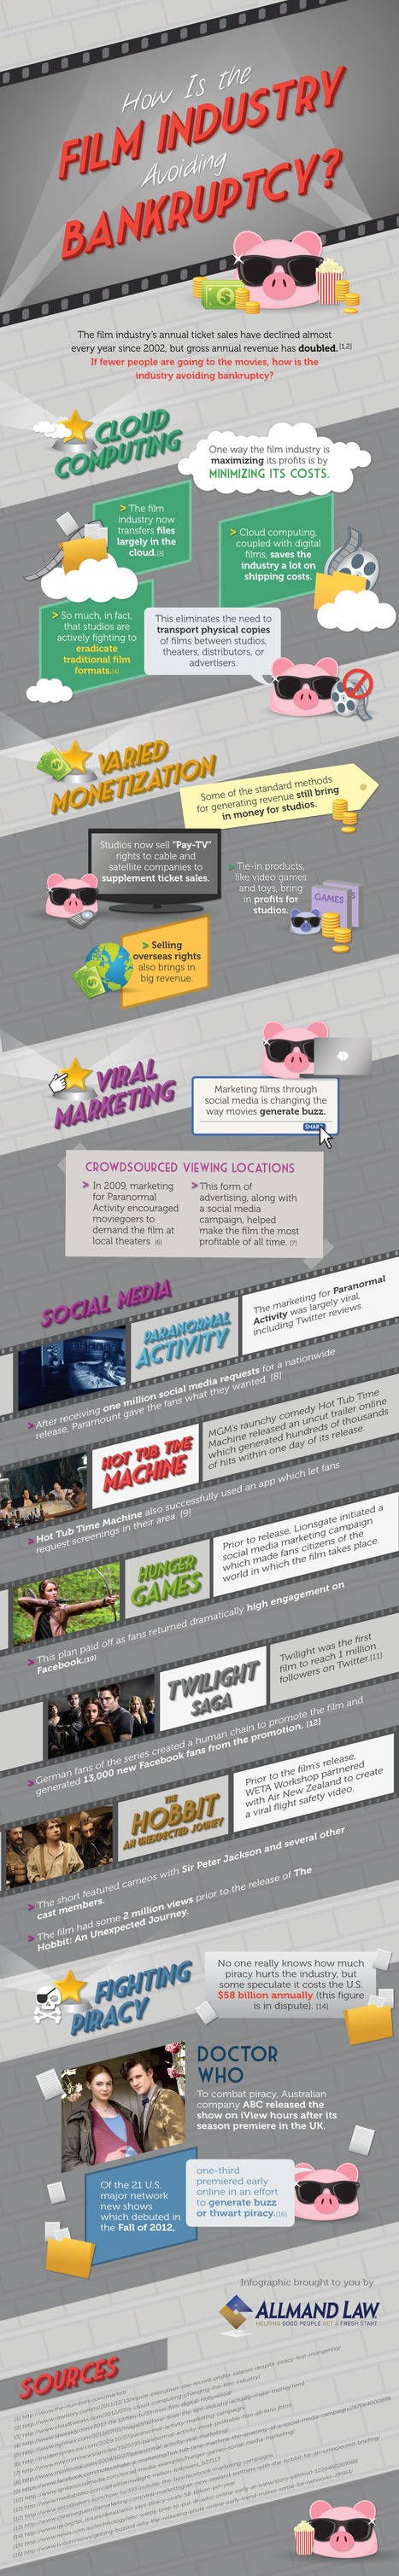 How Social Media and Viral Marketing are Saving the Film Industry [INFOGRAPHIC] | FutureMedia | Scoop.it